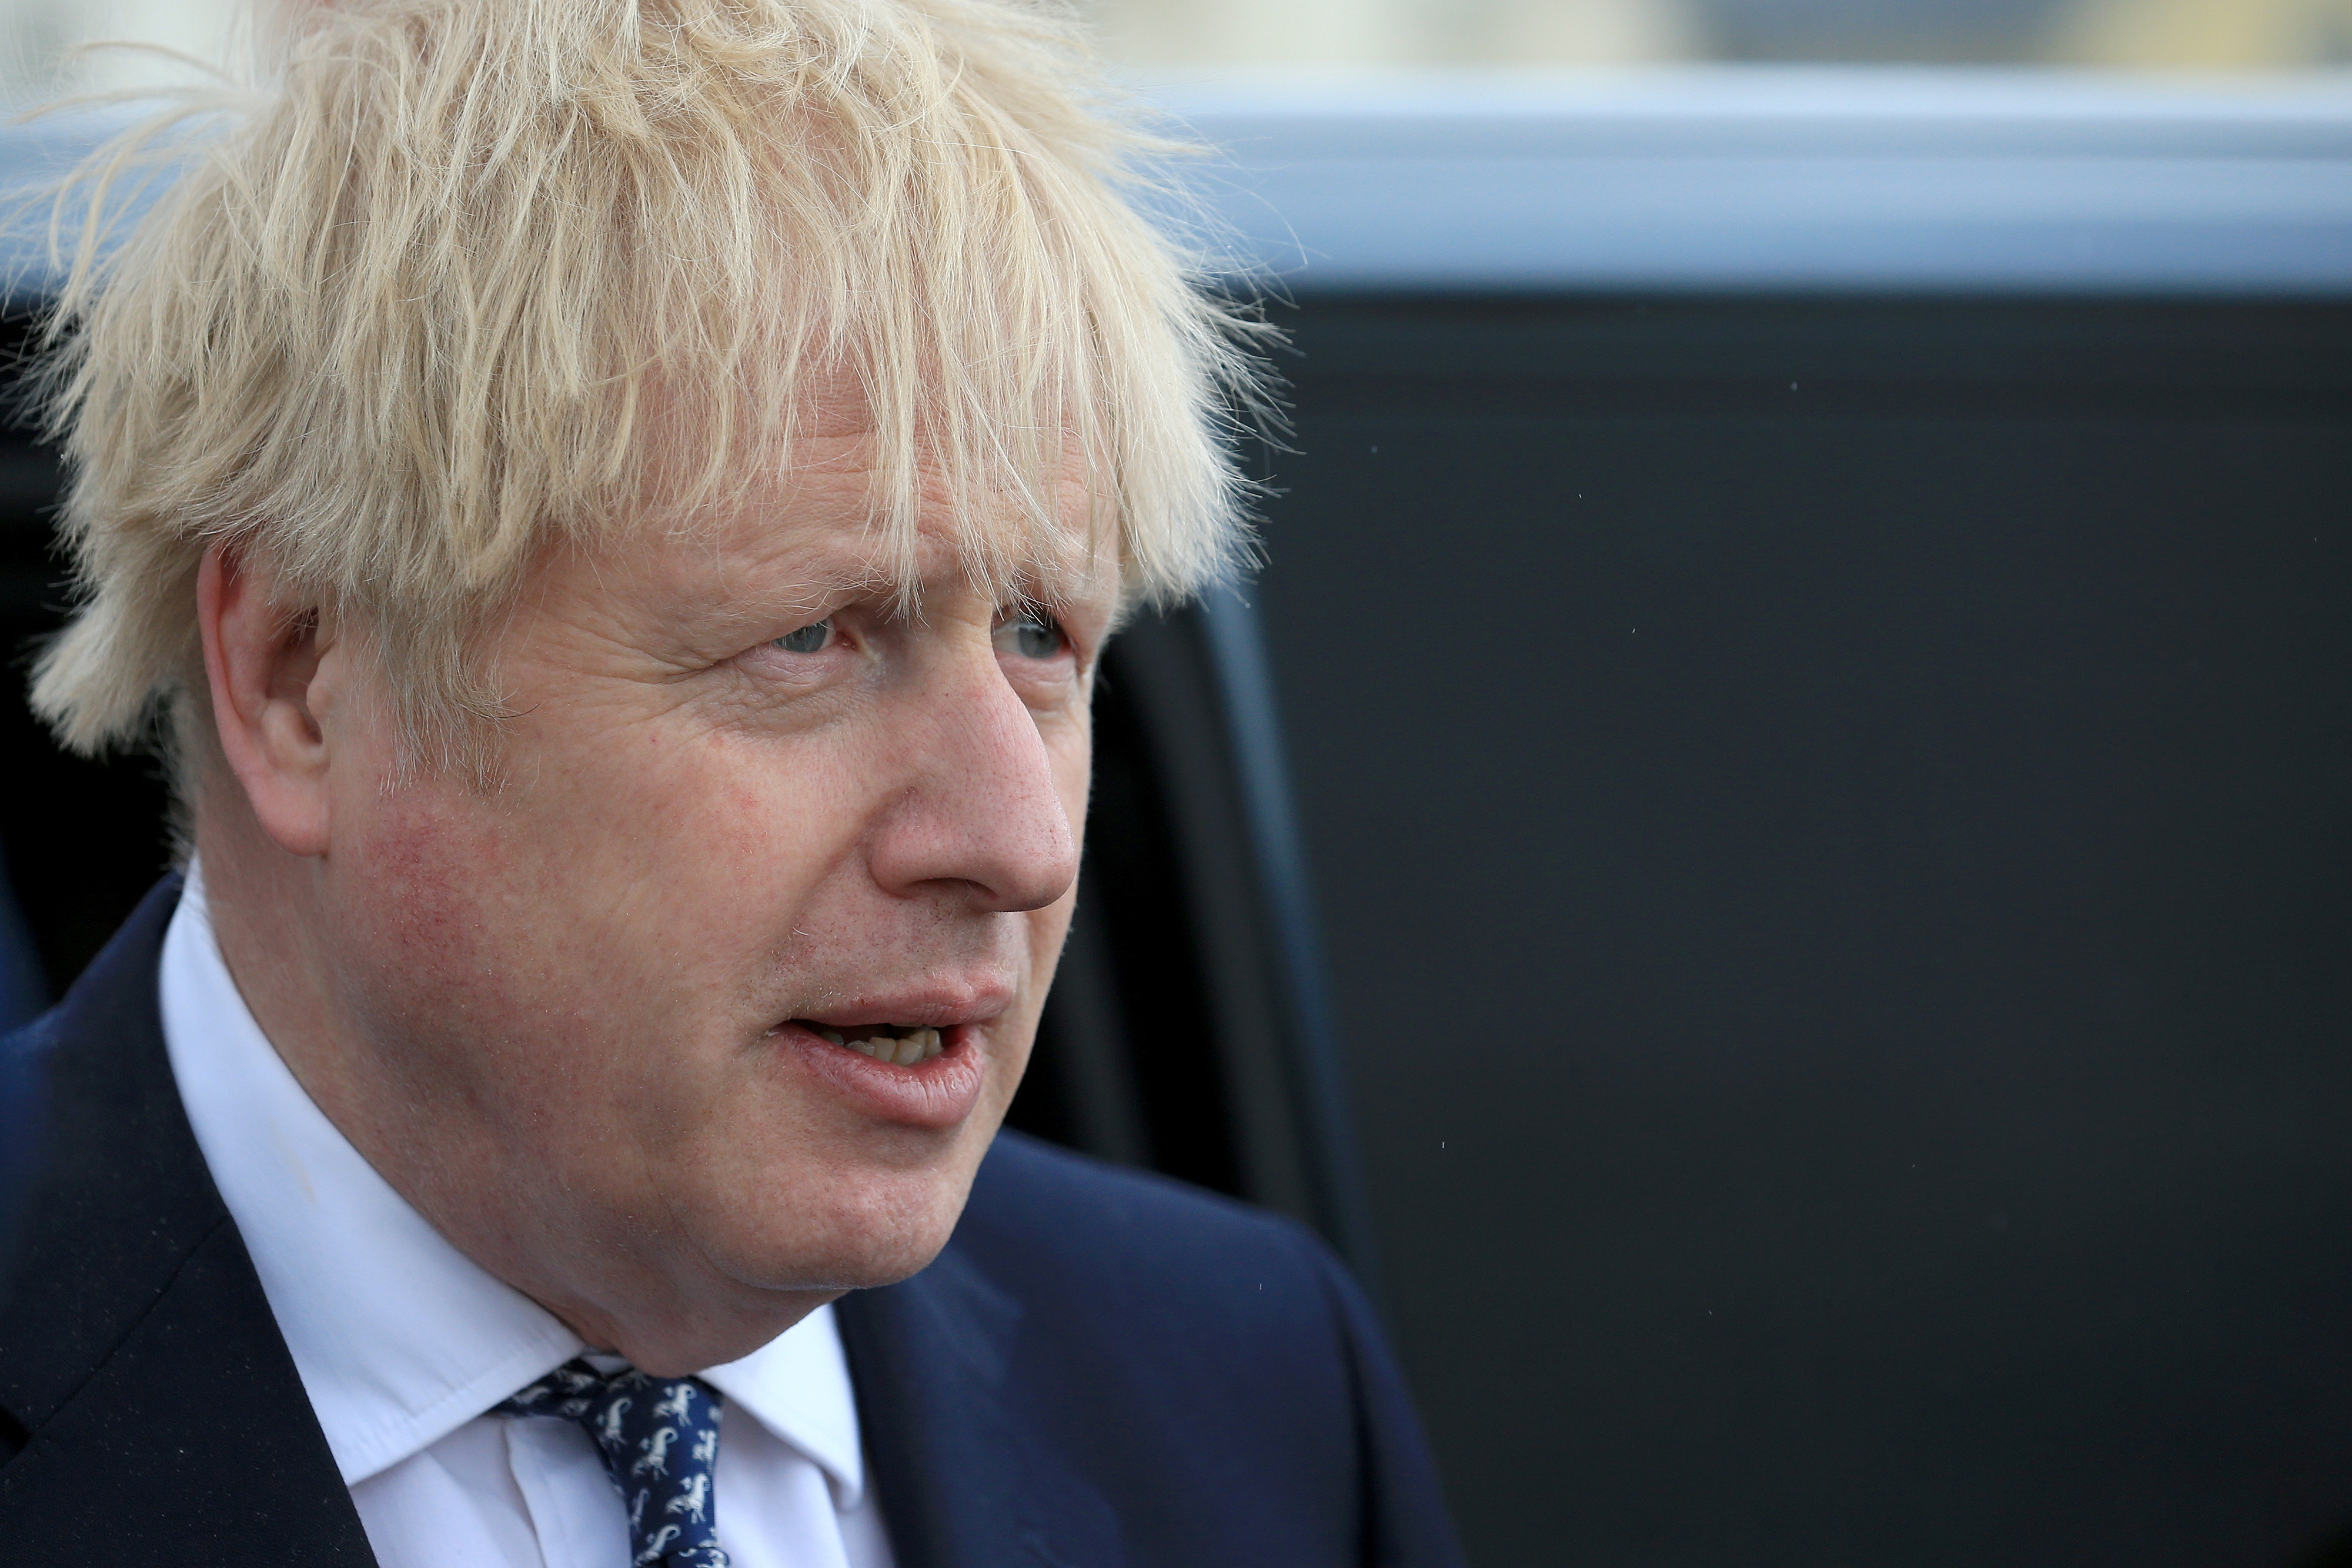 Britain's Prime Minister Boris Johnson looks on as he campaigns on behalf of Conservative Party candidate Jill Mortimer in Hartlepool, Britain May 3, 2021. Lindsey Parnaby/Pool via REUTERS